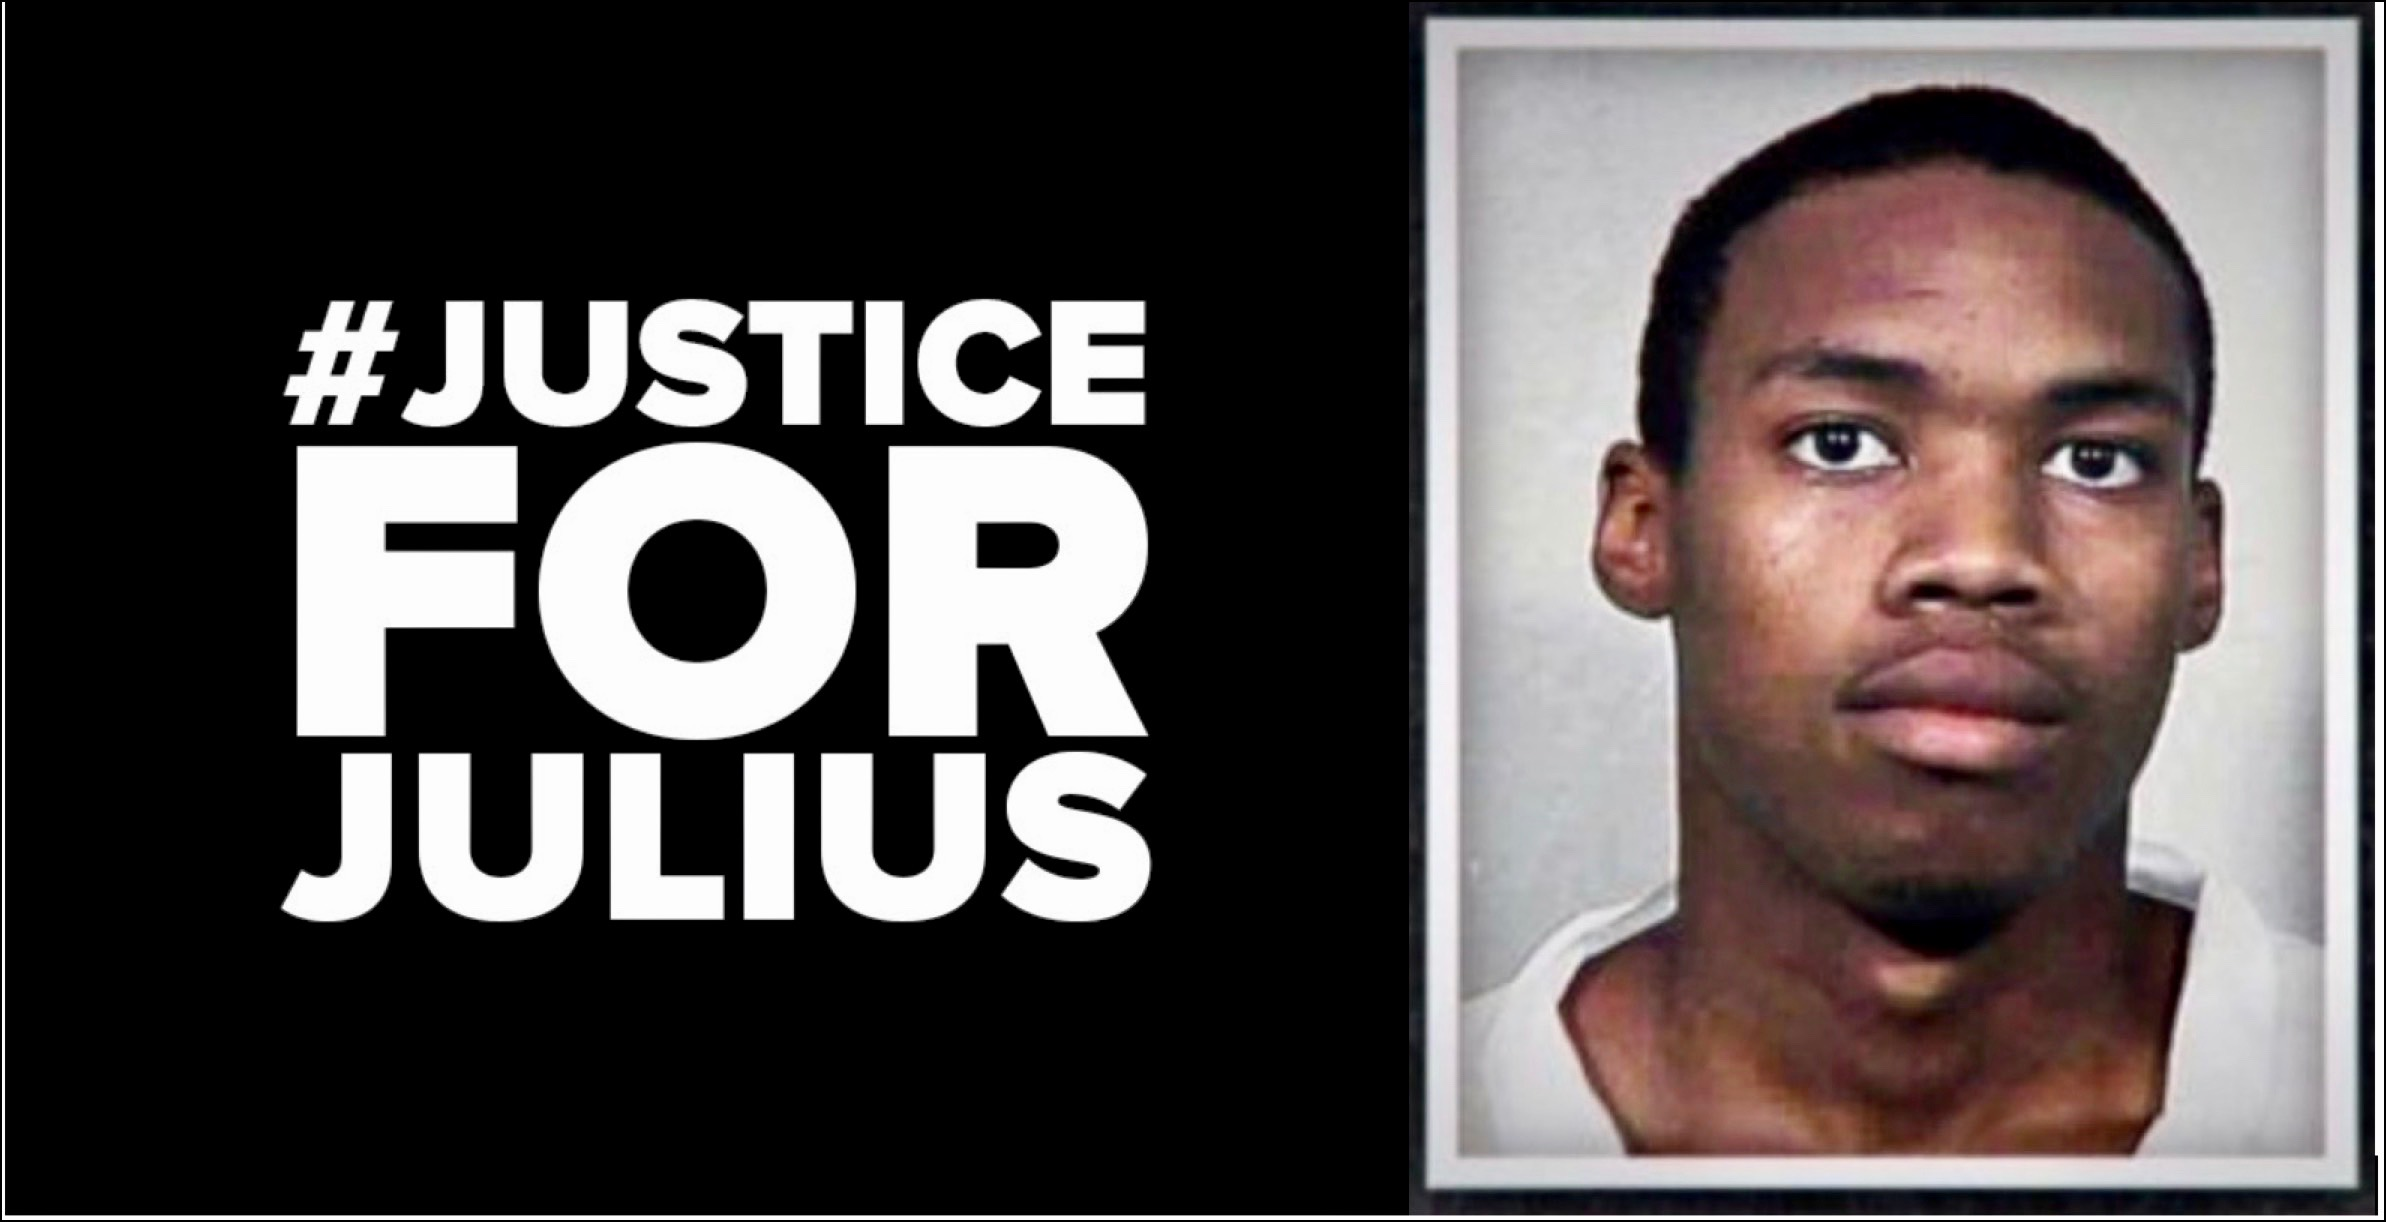 Justice for Julius with photo 2Aug2020